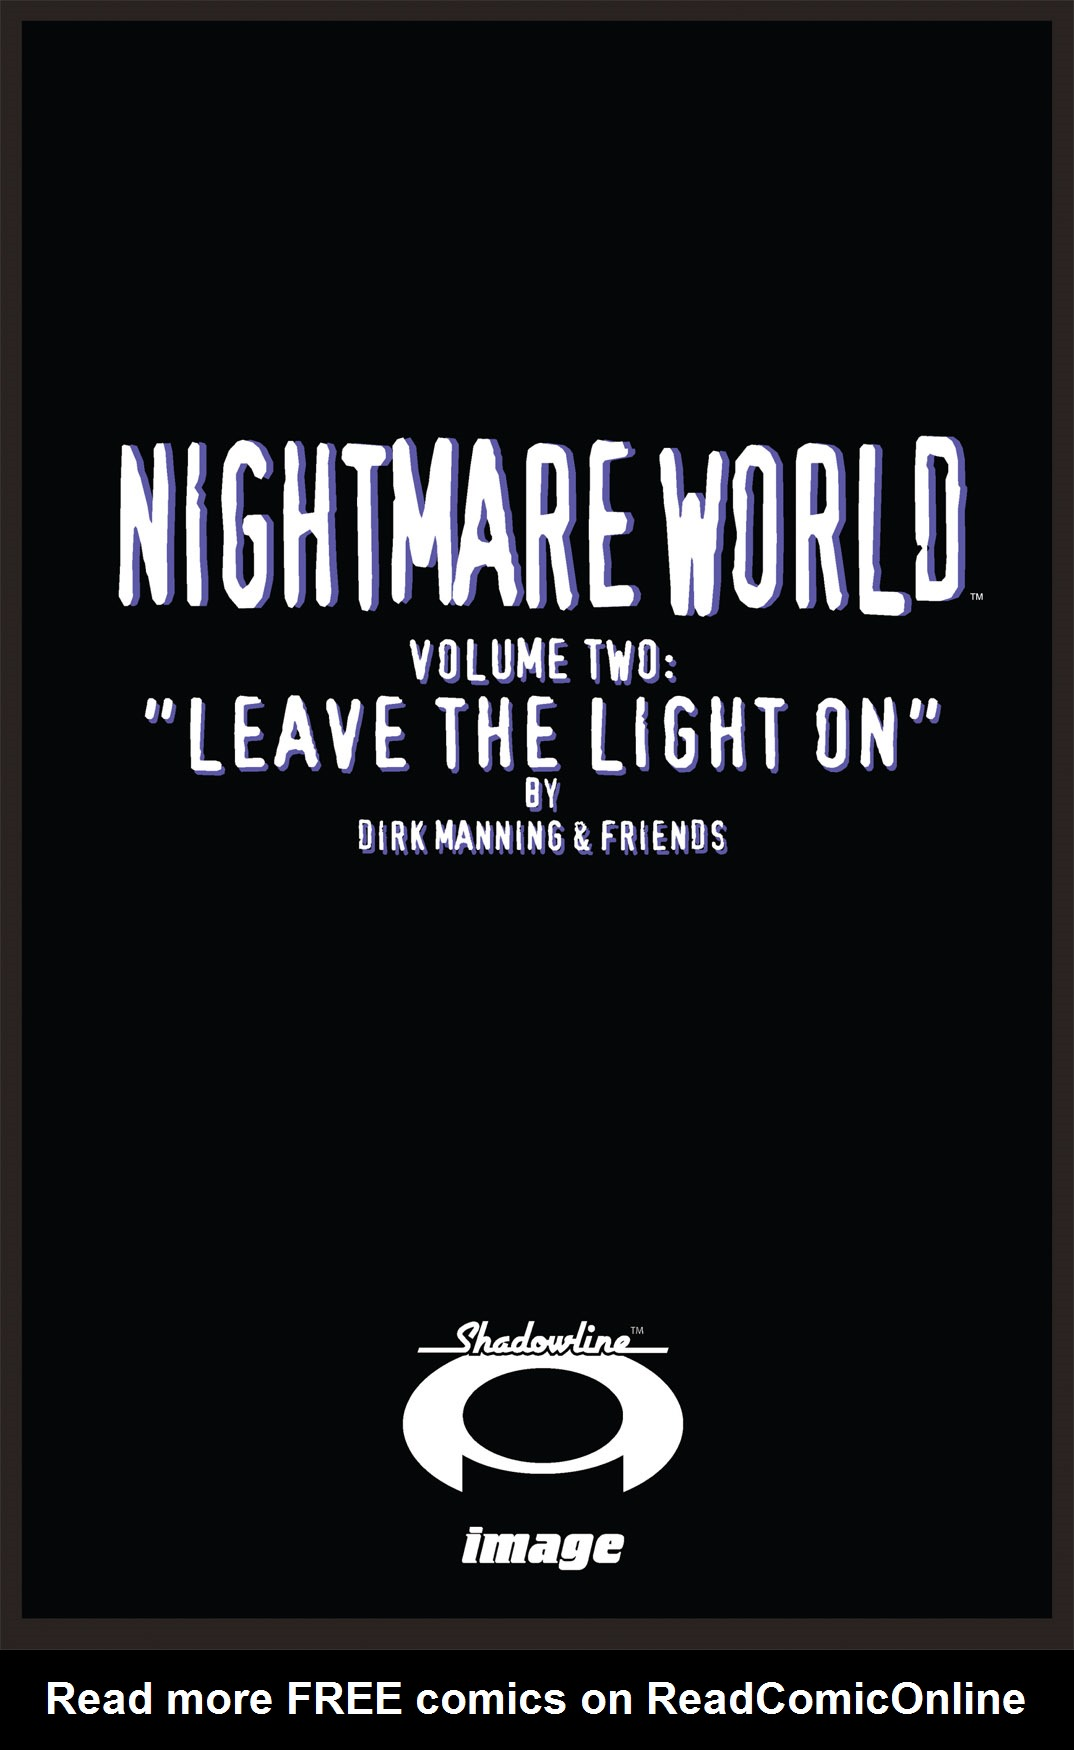 Read online Nightmare World comic -  Issue # Vol. 2 Leave the Light On - 2